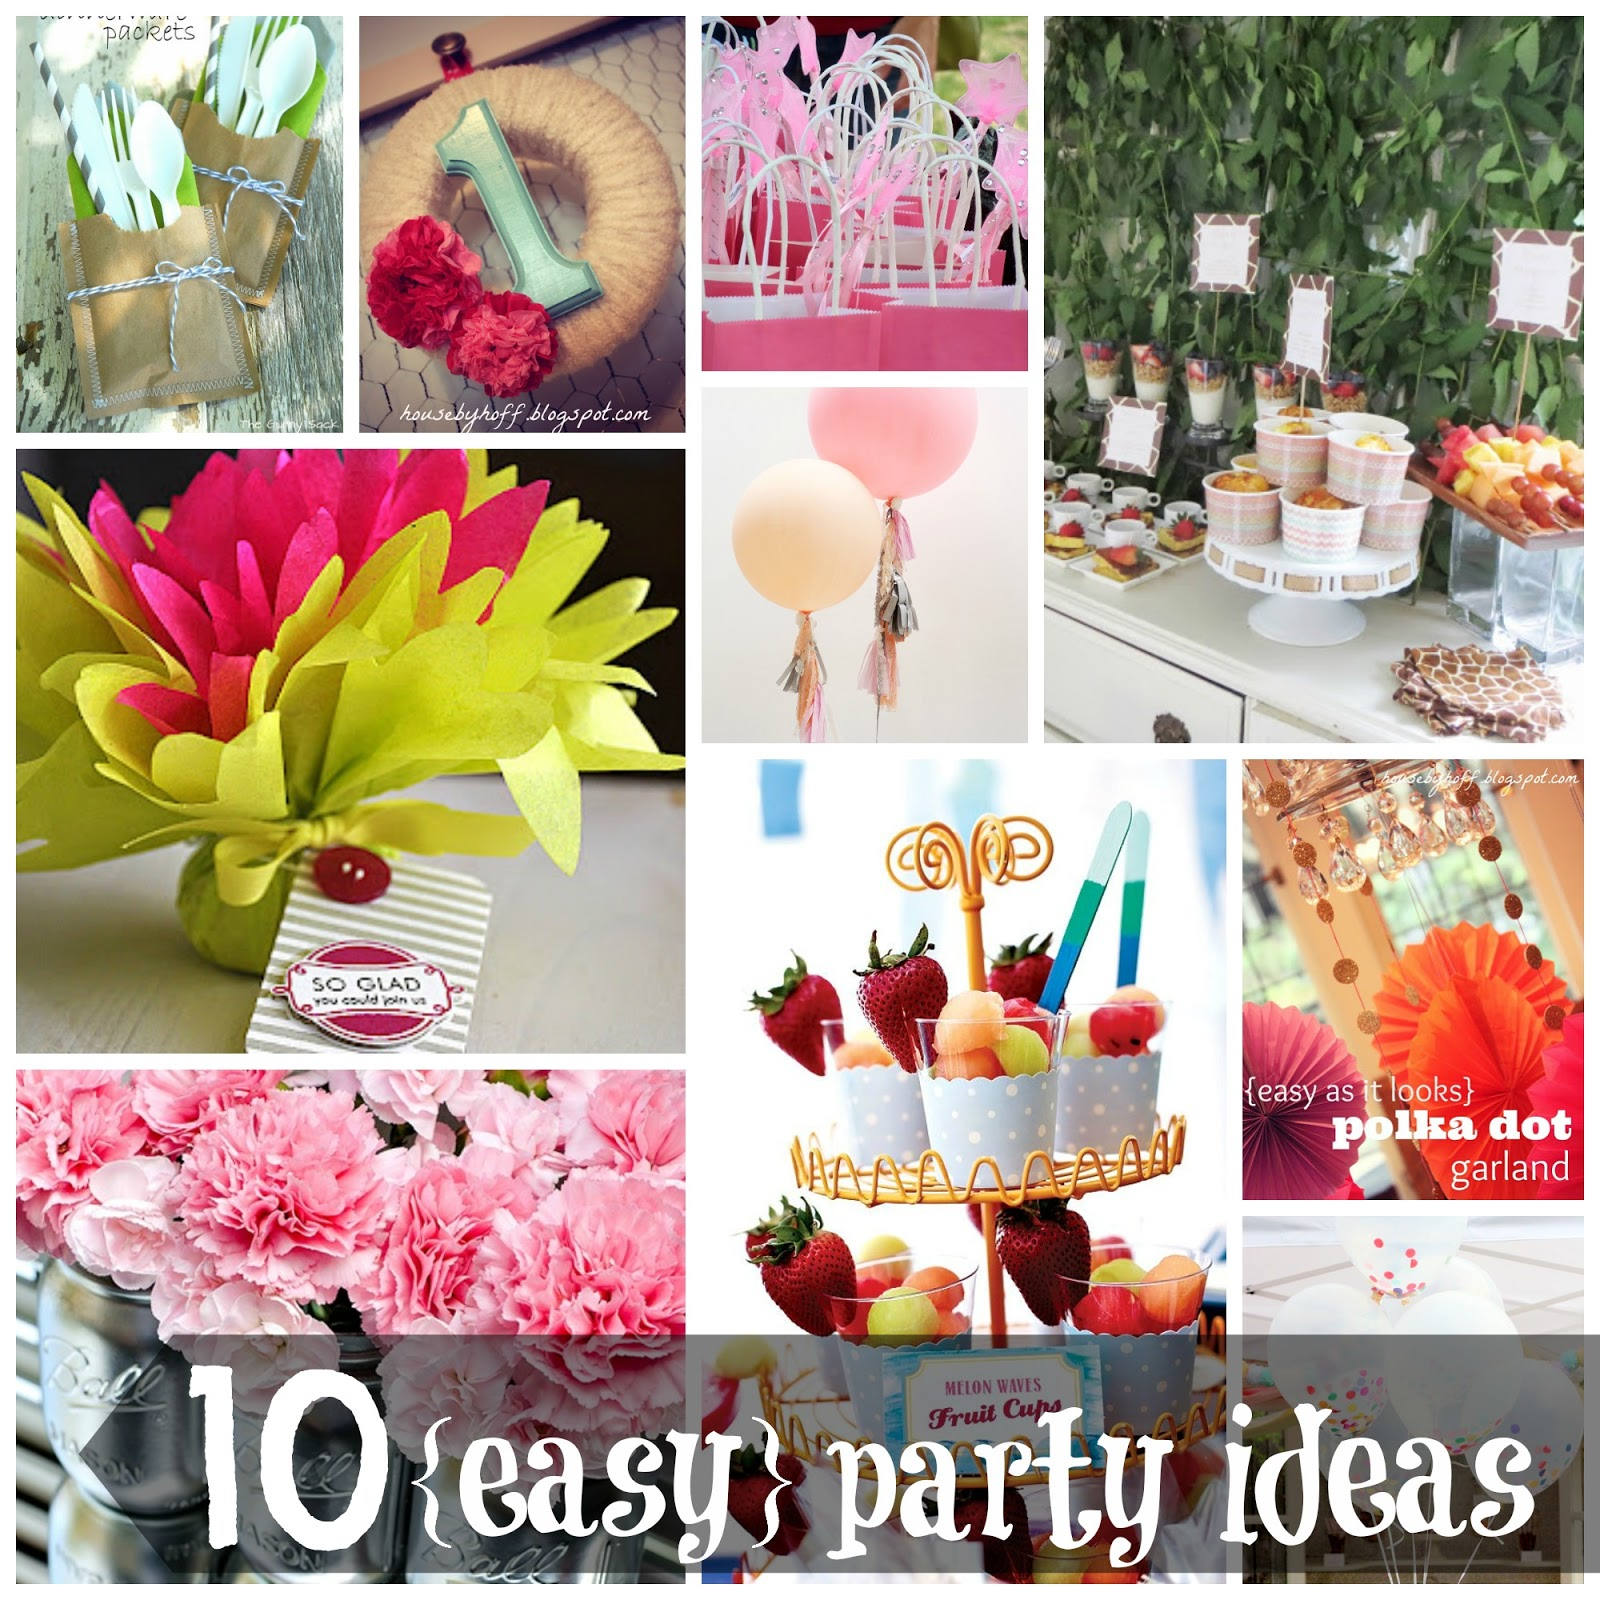 10 easy party ideas 10 easy party ideas diy party birthdayparty babyshower partydecor solutioingenieria Image collections